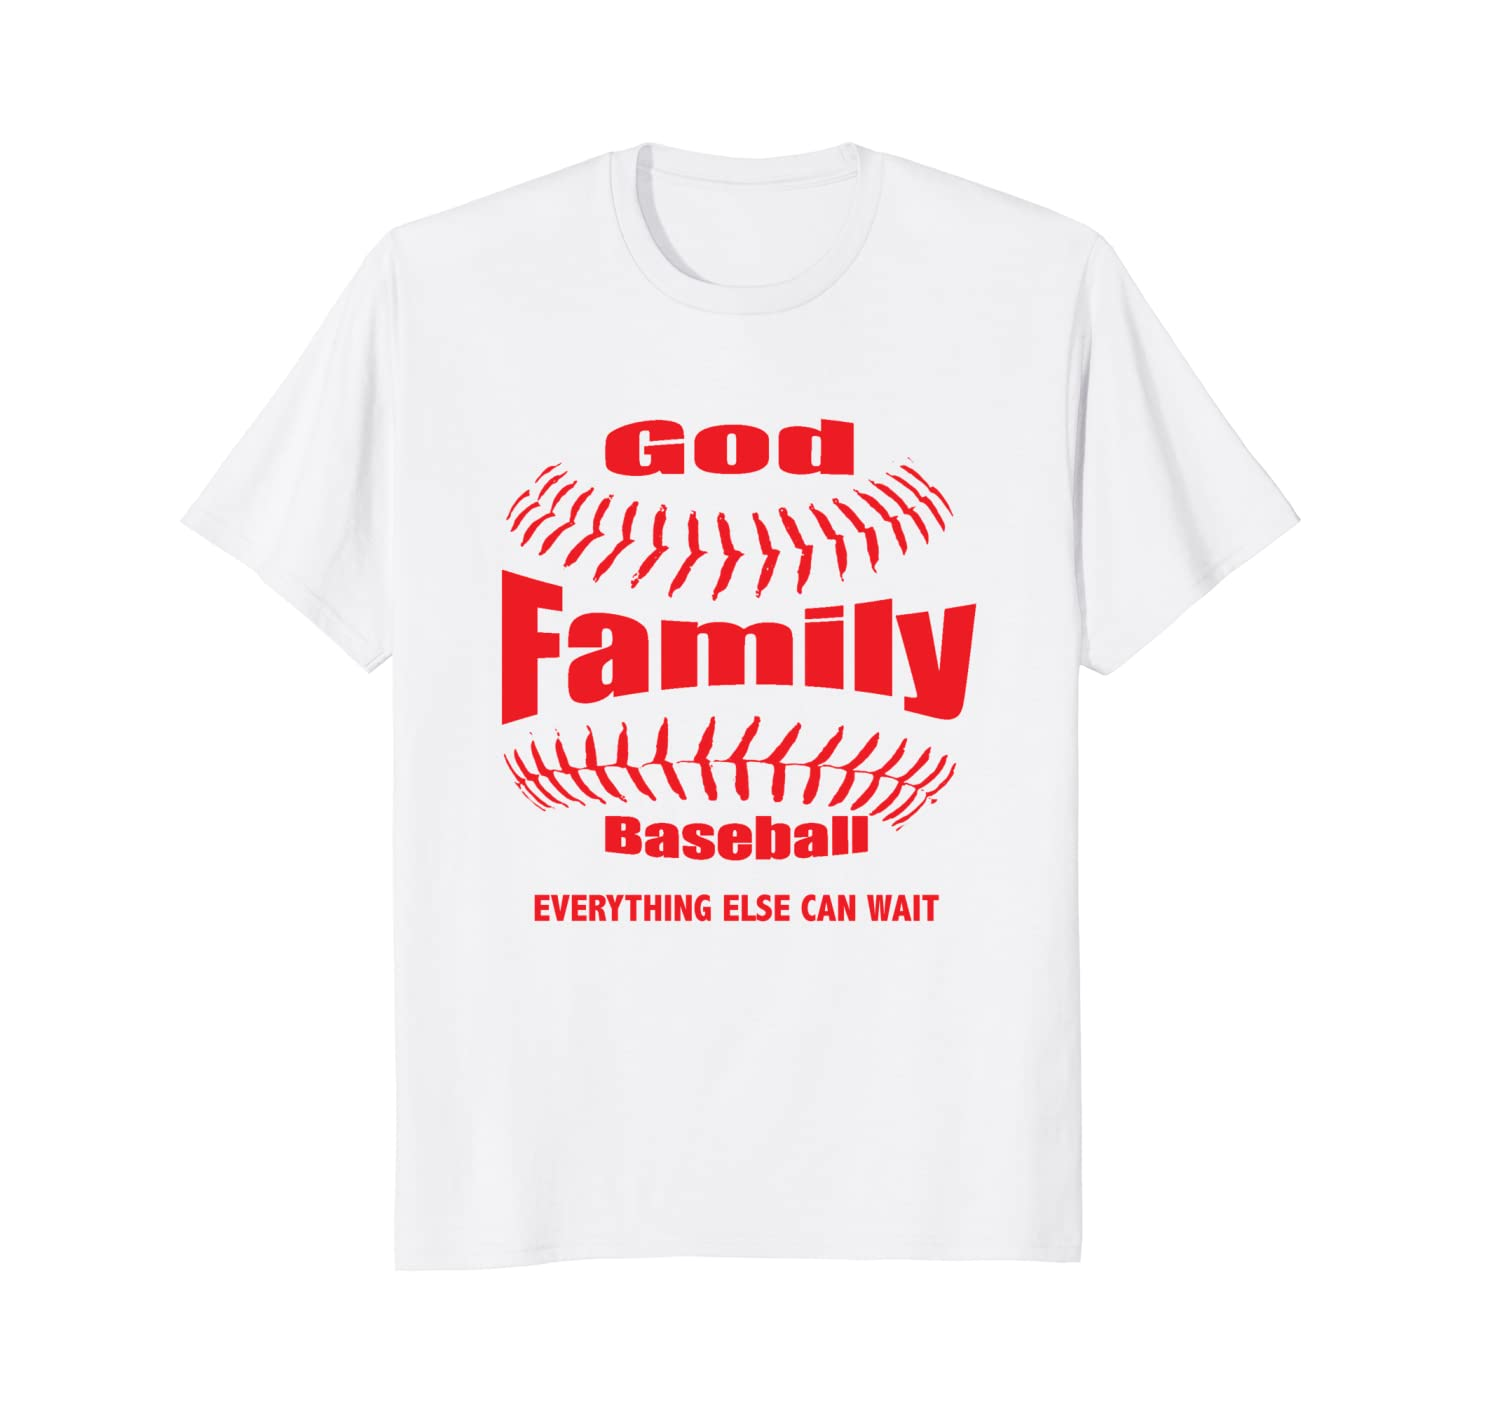 GOD, FAMILY THEN BASEBALL EVERYTHING ELSE CAN WAIT